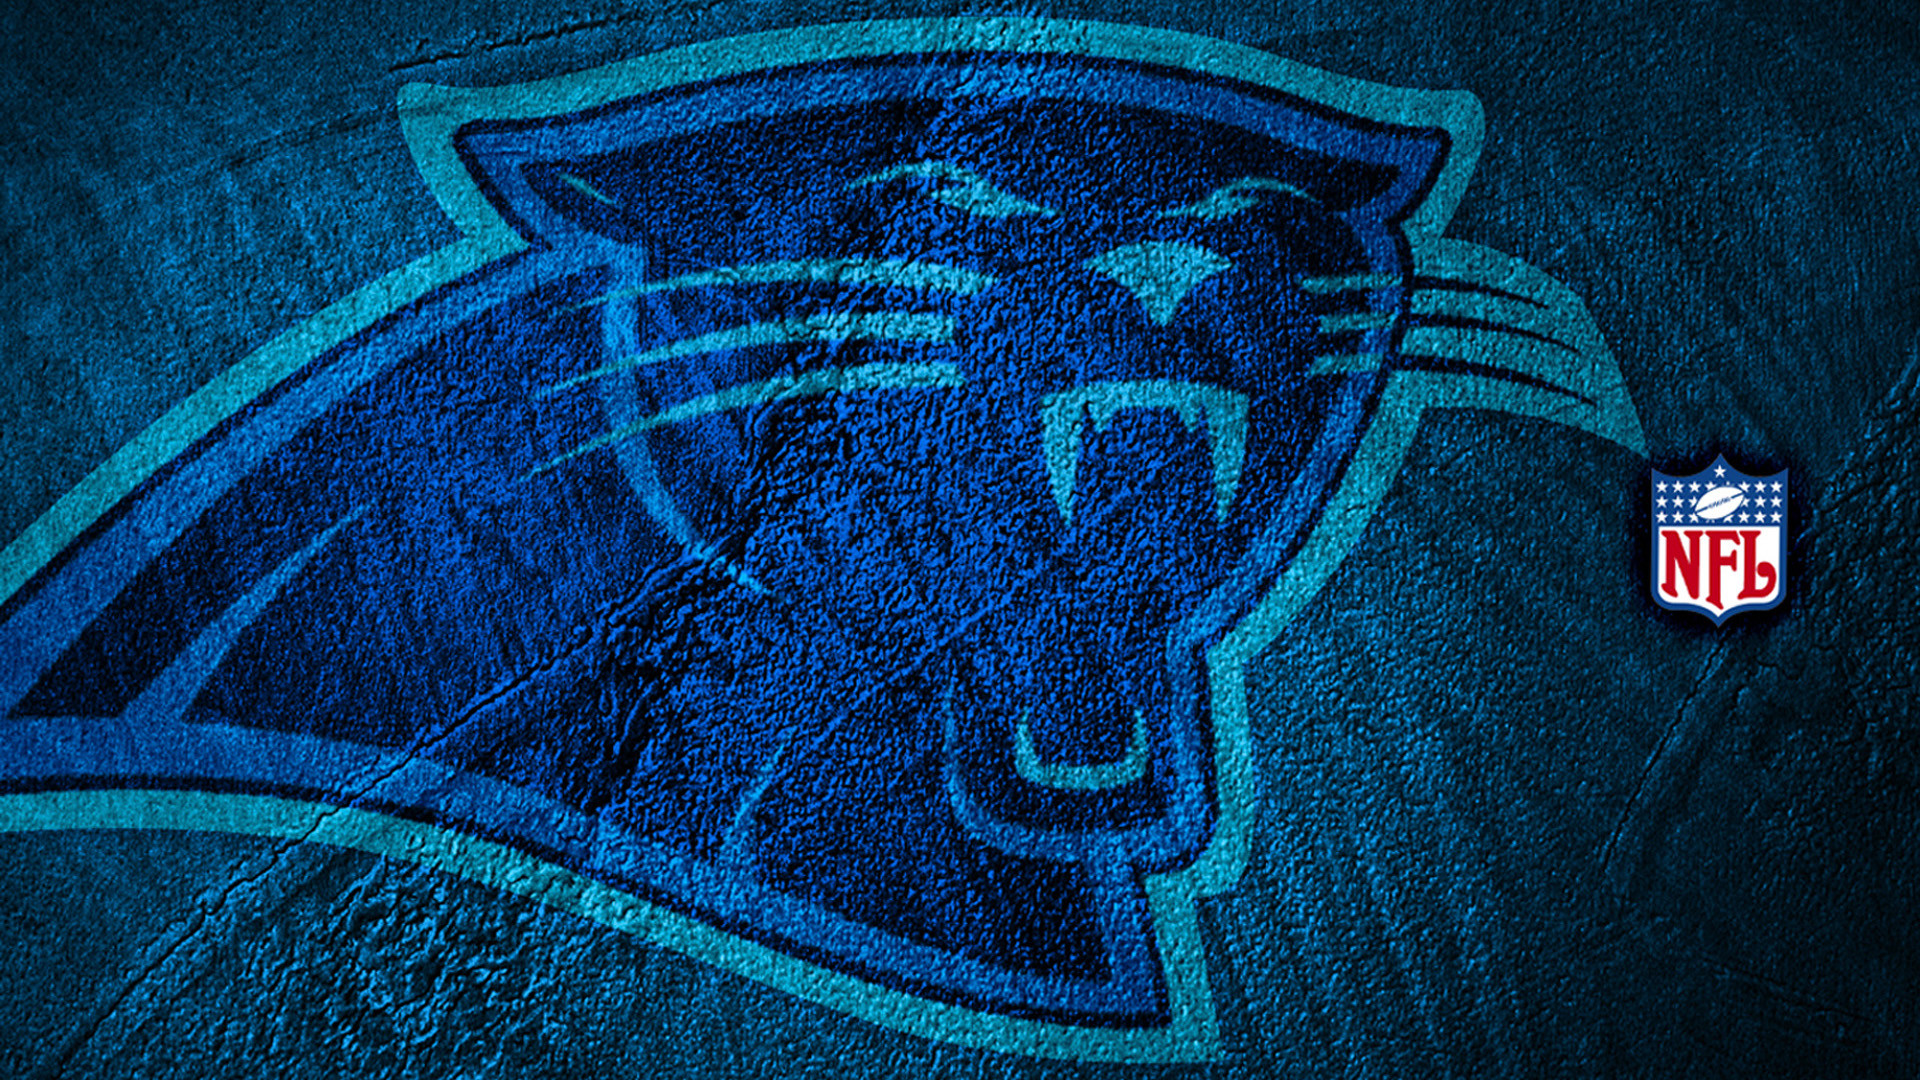 1920x1080 Download free carolina panthers wallpapers for your mobile phone